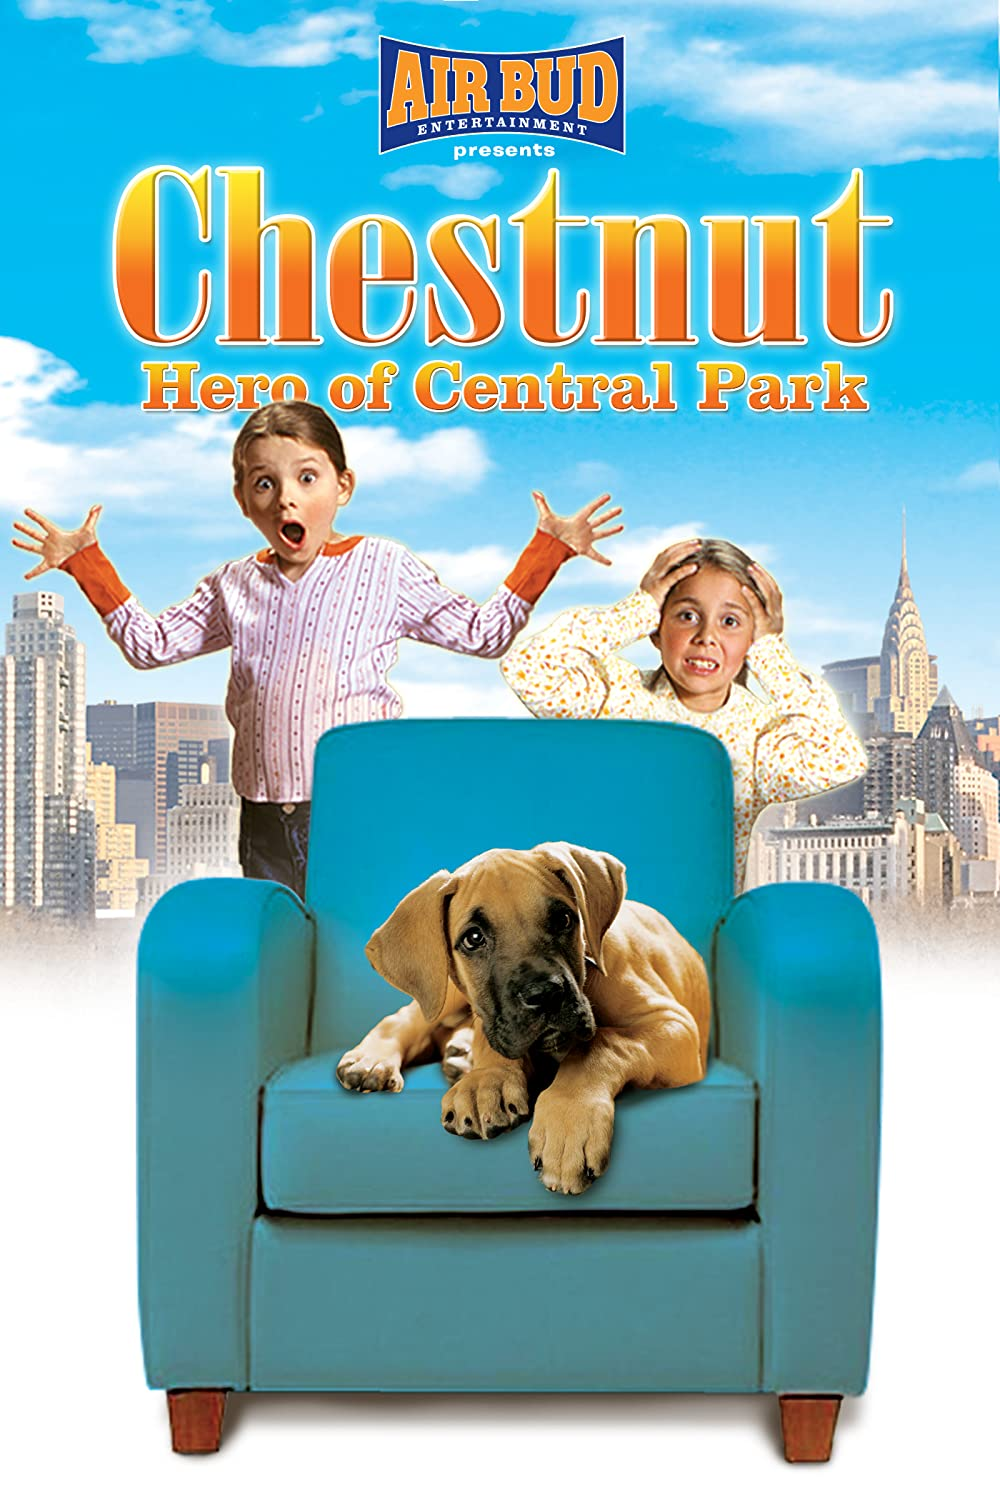 Chestnut: Hero of Central Park 2004 Hindi Dual Audio 310MB HDRip ESubs Download